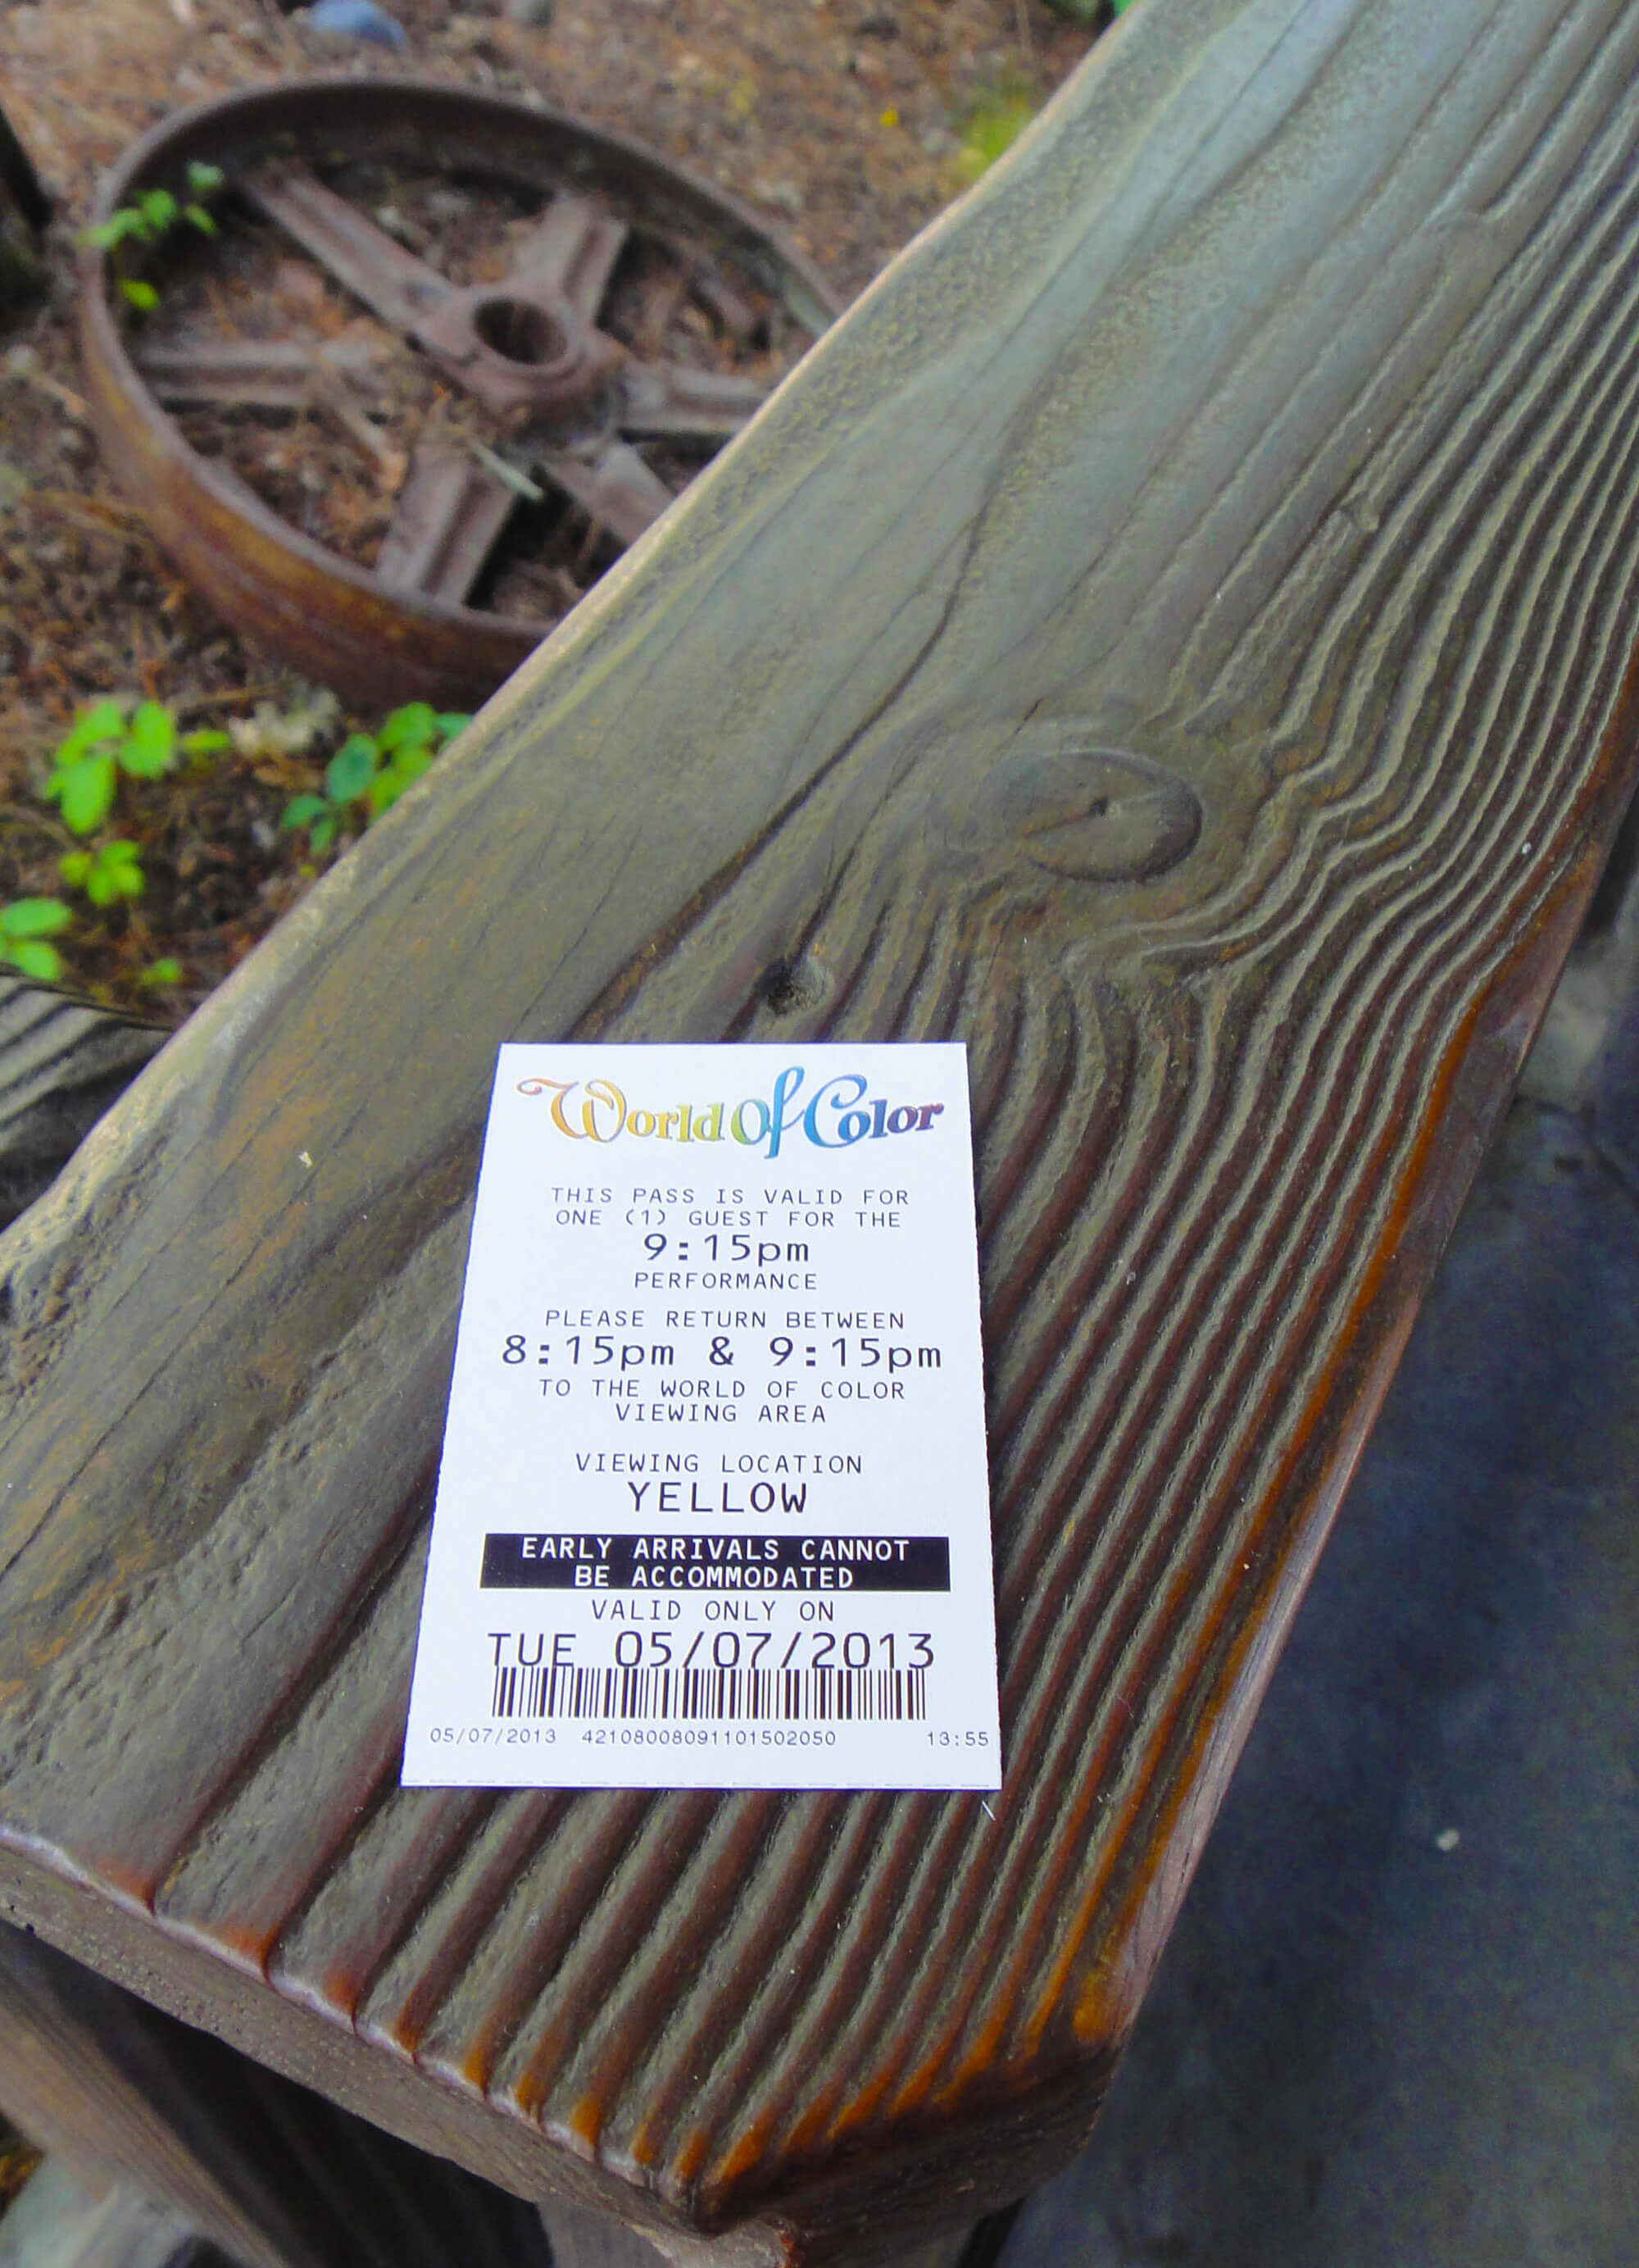 Not to miss Disney California Adventure attractions and shows - World of Color